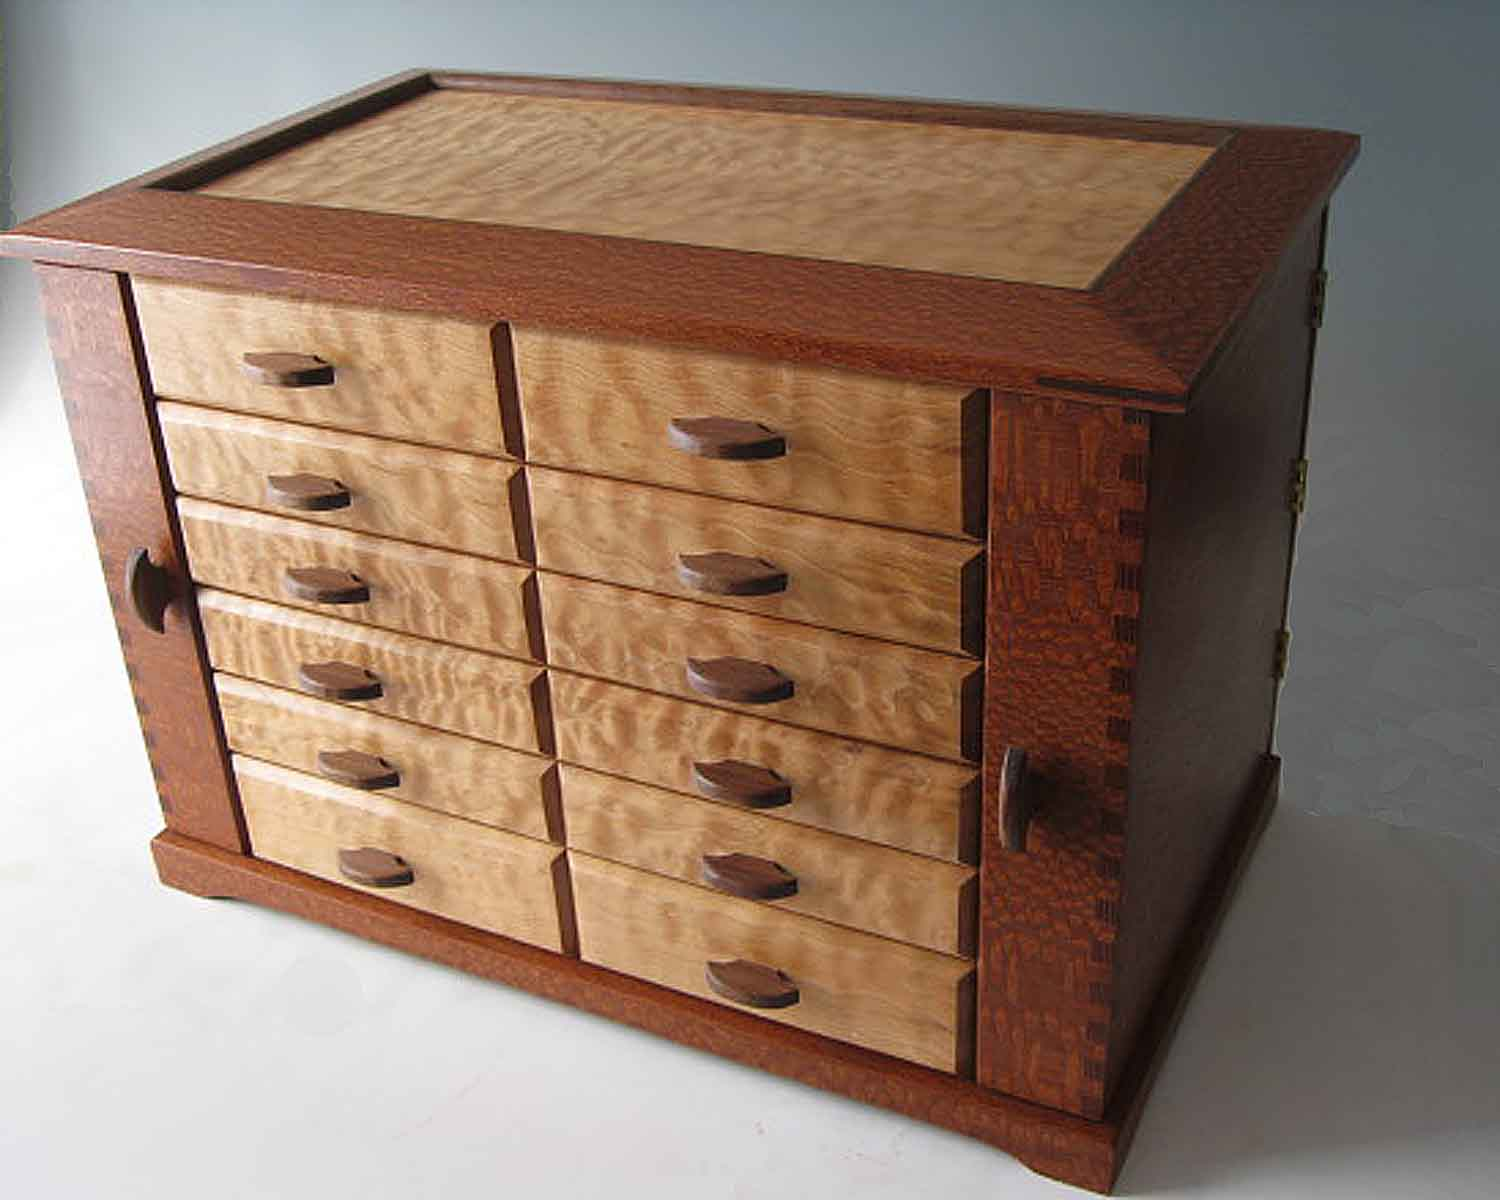 Handmade wooden jewelry boxes are the perfect unique for Jewelry box made of wood